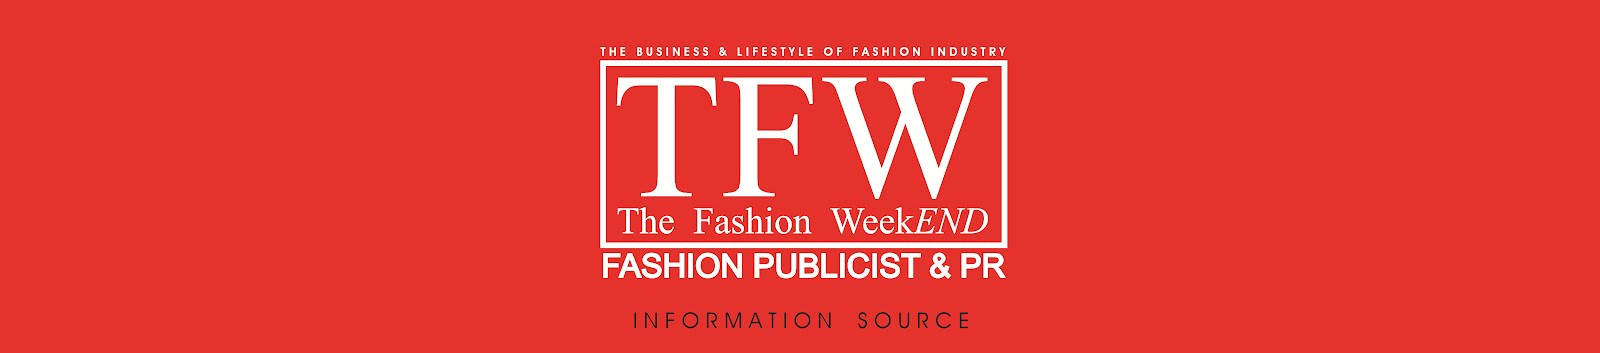 TFW-The FashionWeekEND - Publicist & PR